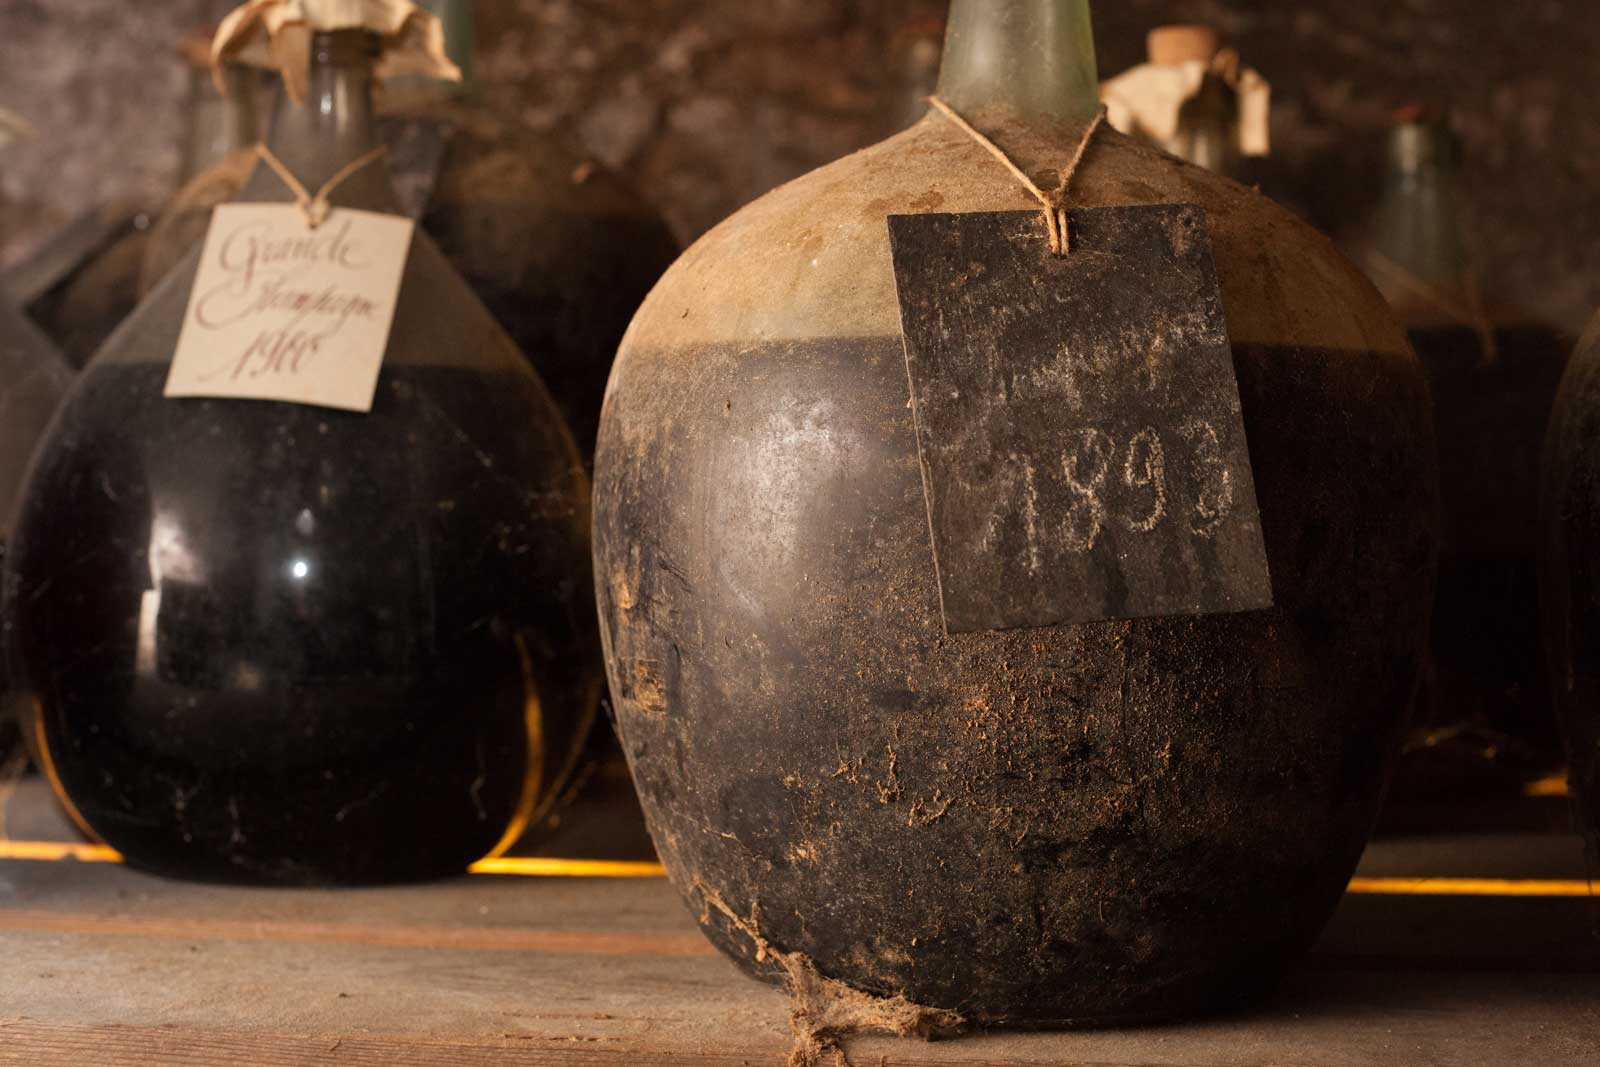 The demijohn of 1893 Cognac Lhéraud. ©Kevin Day/Opening a Bottle